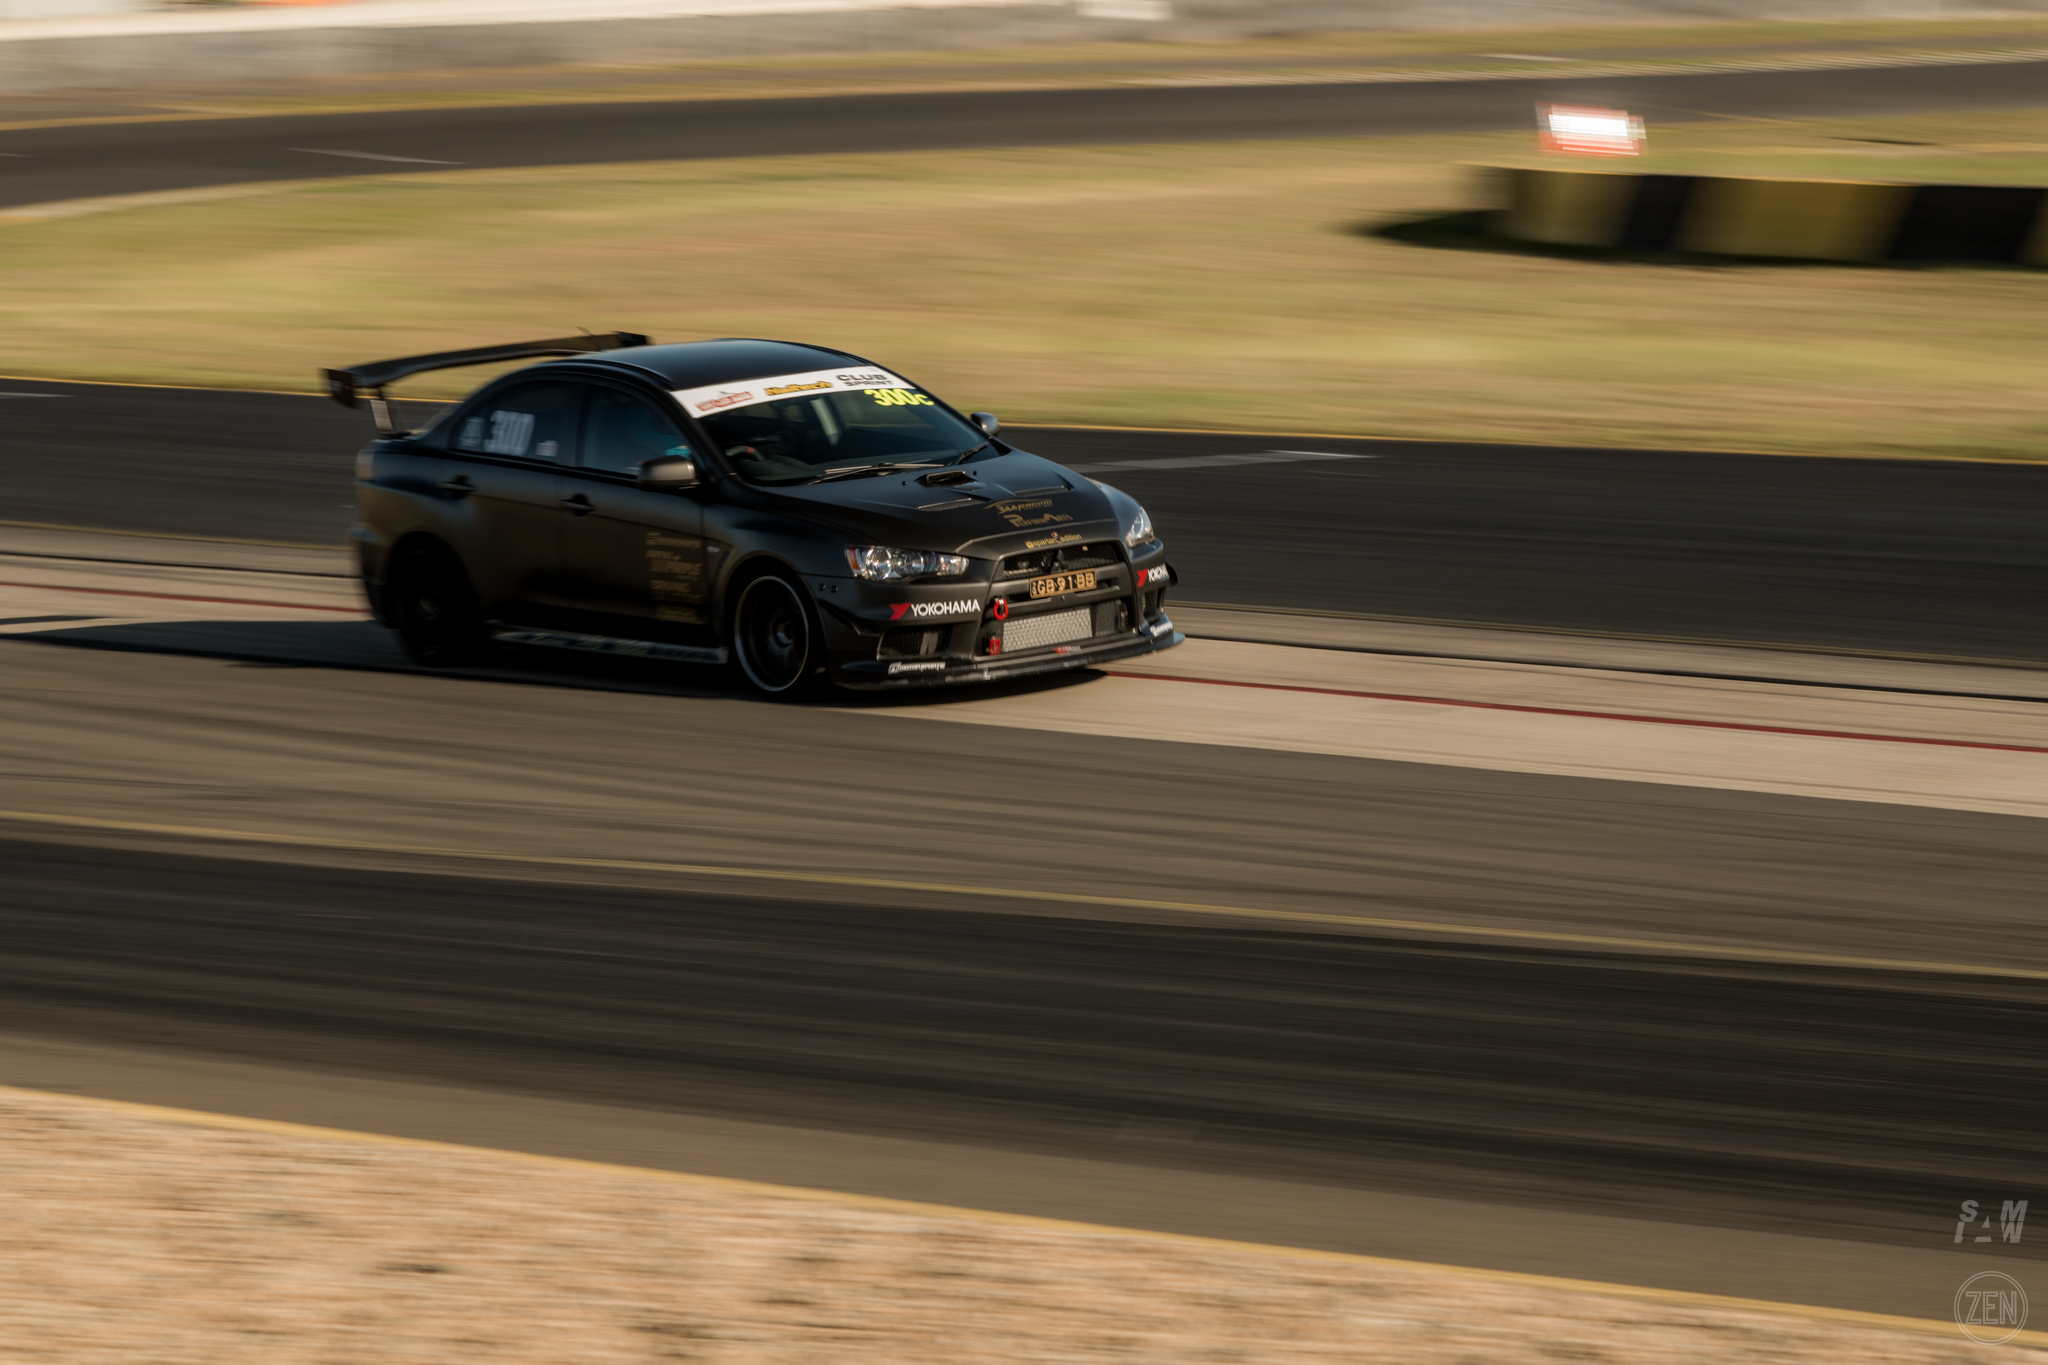 2019-10-19 - WTAC Day 2 012